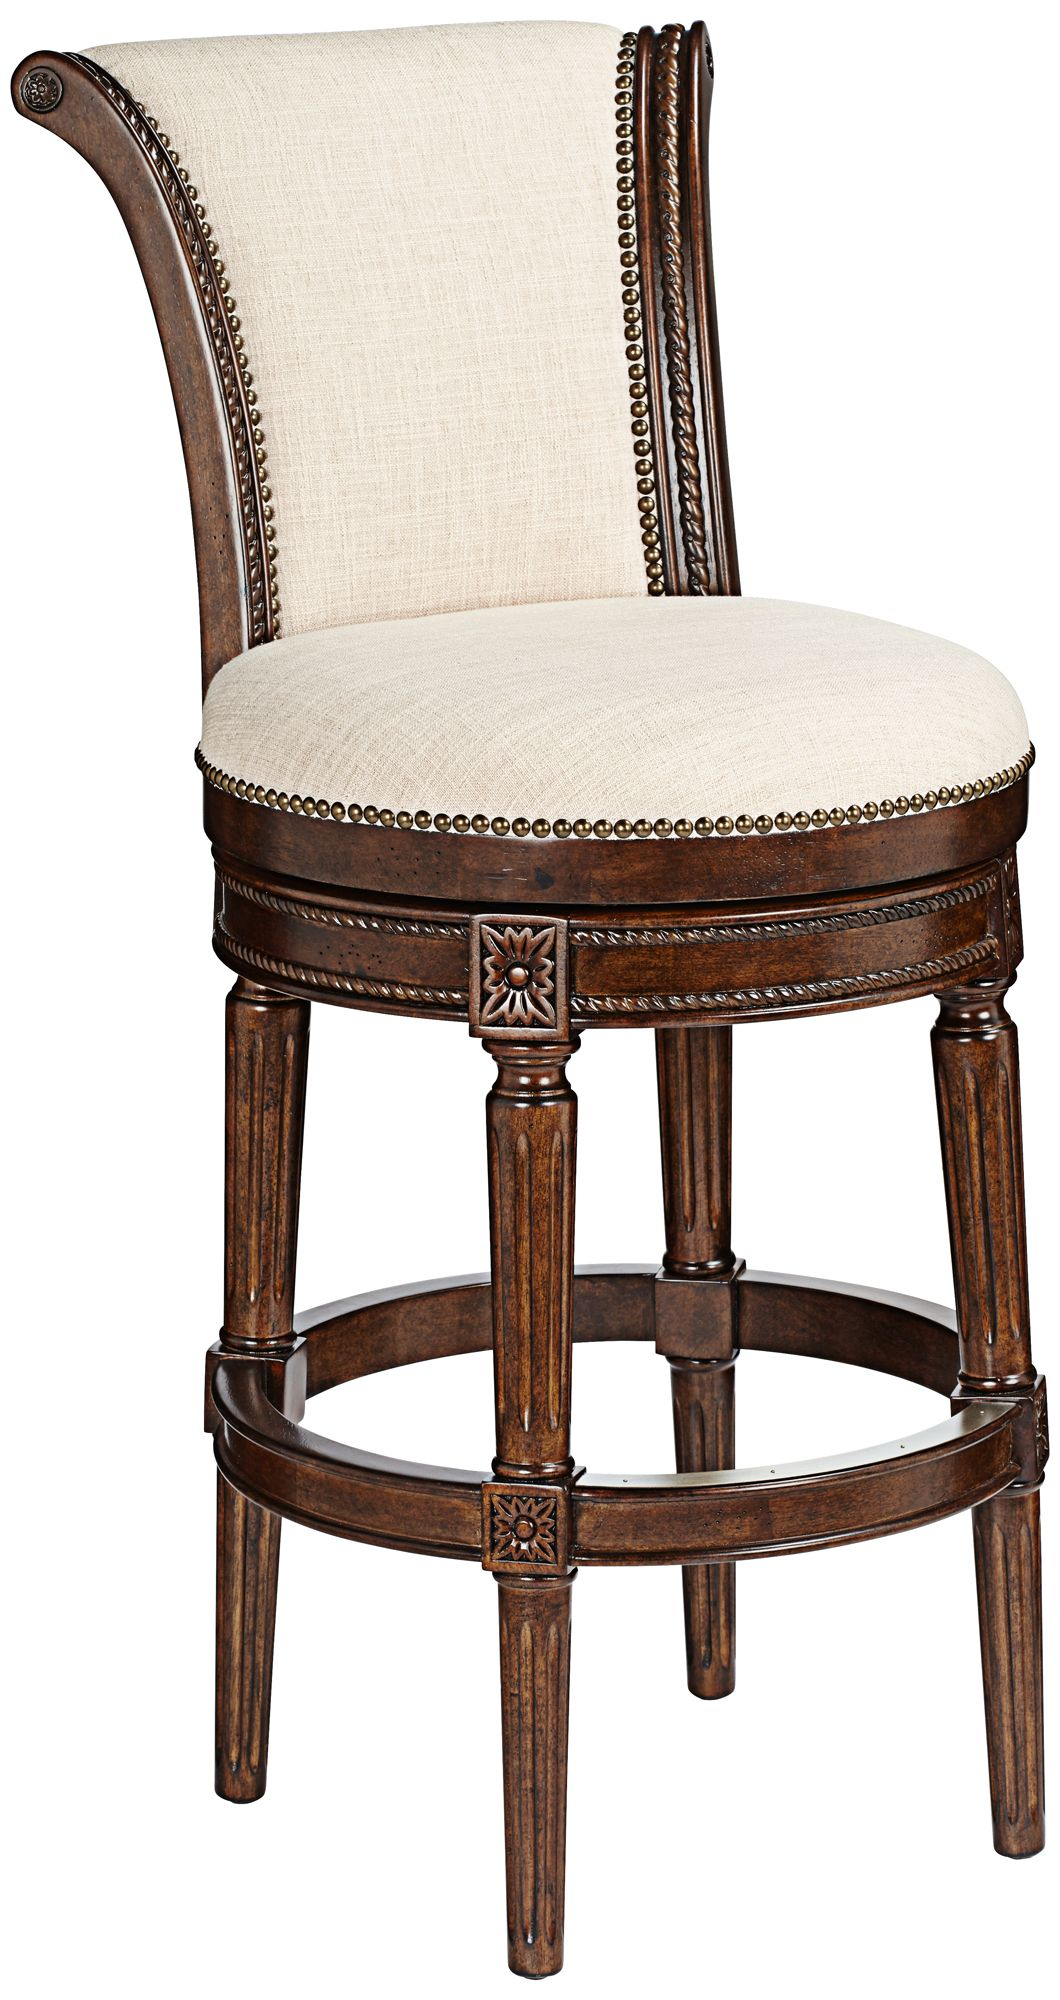 Xander 24 1/2  Cream Fabric Swivel Counter Stool  sc 1 st  L&s Plus & Footrest Barstools Seating | Lamps Plus islam-shia.org